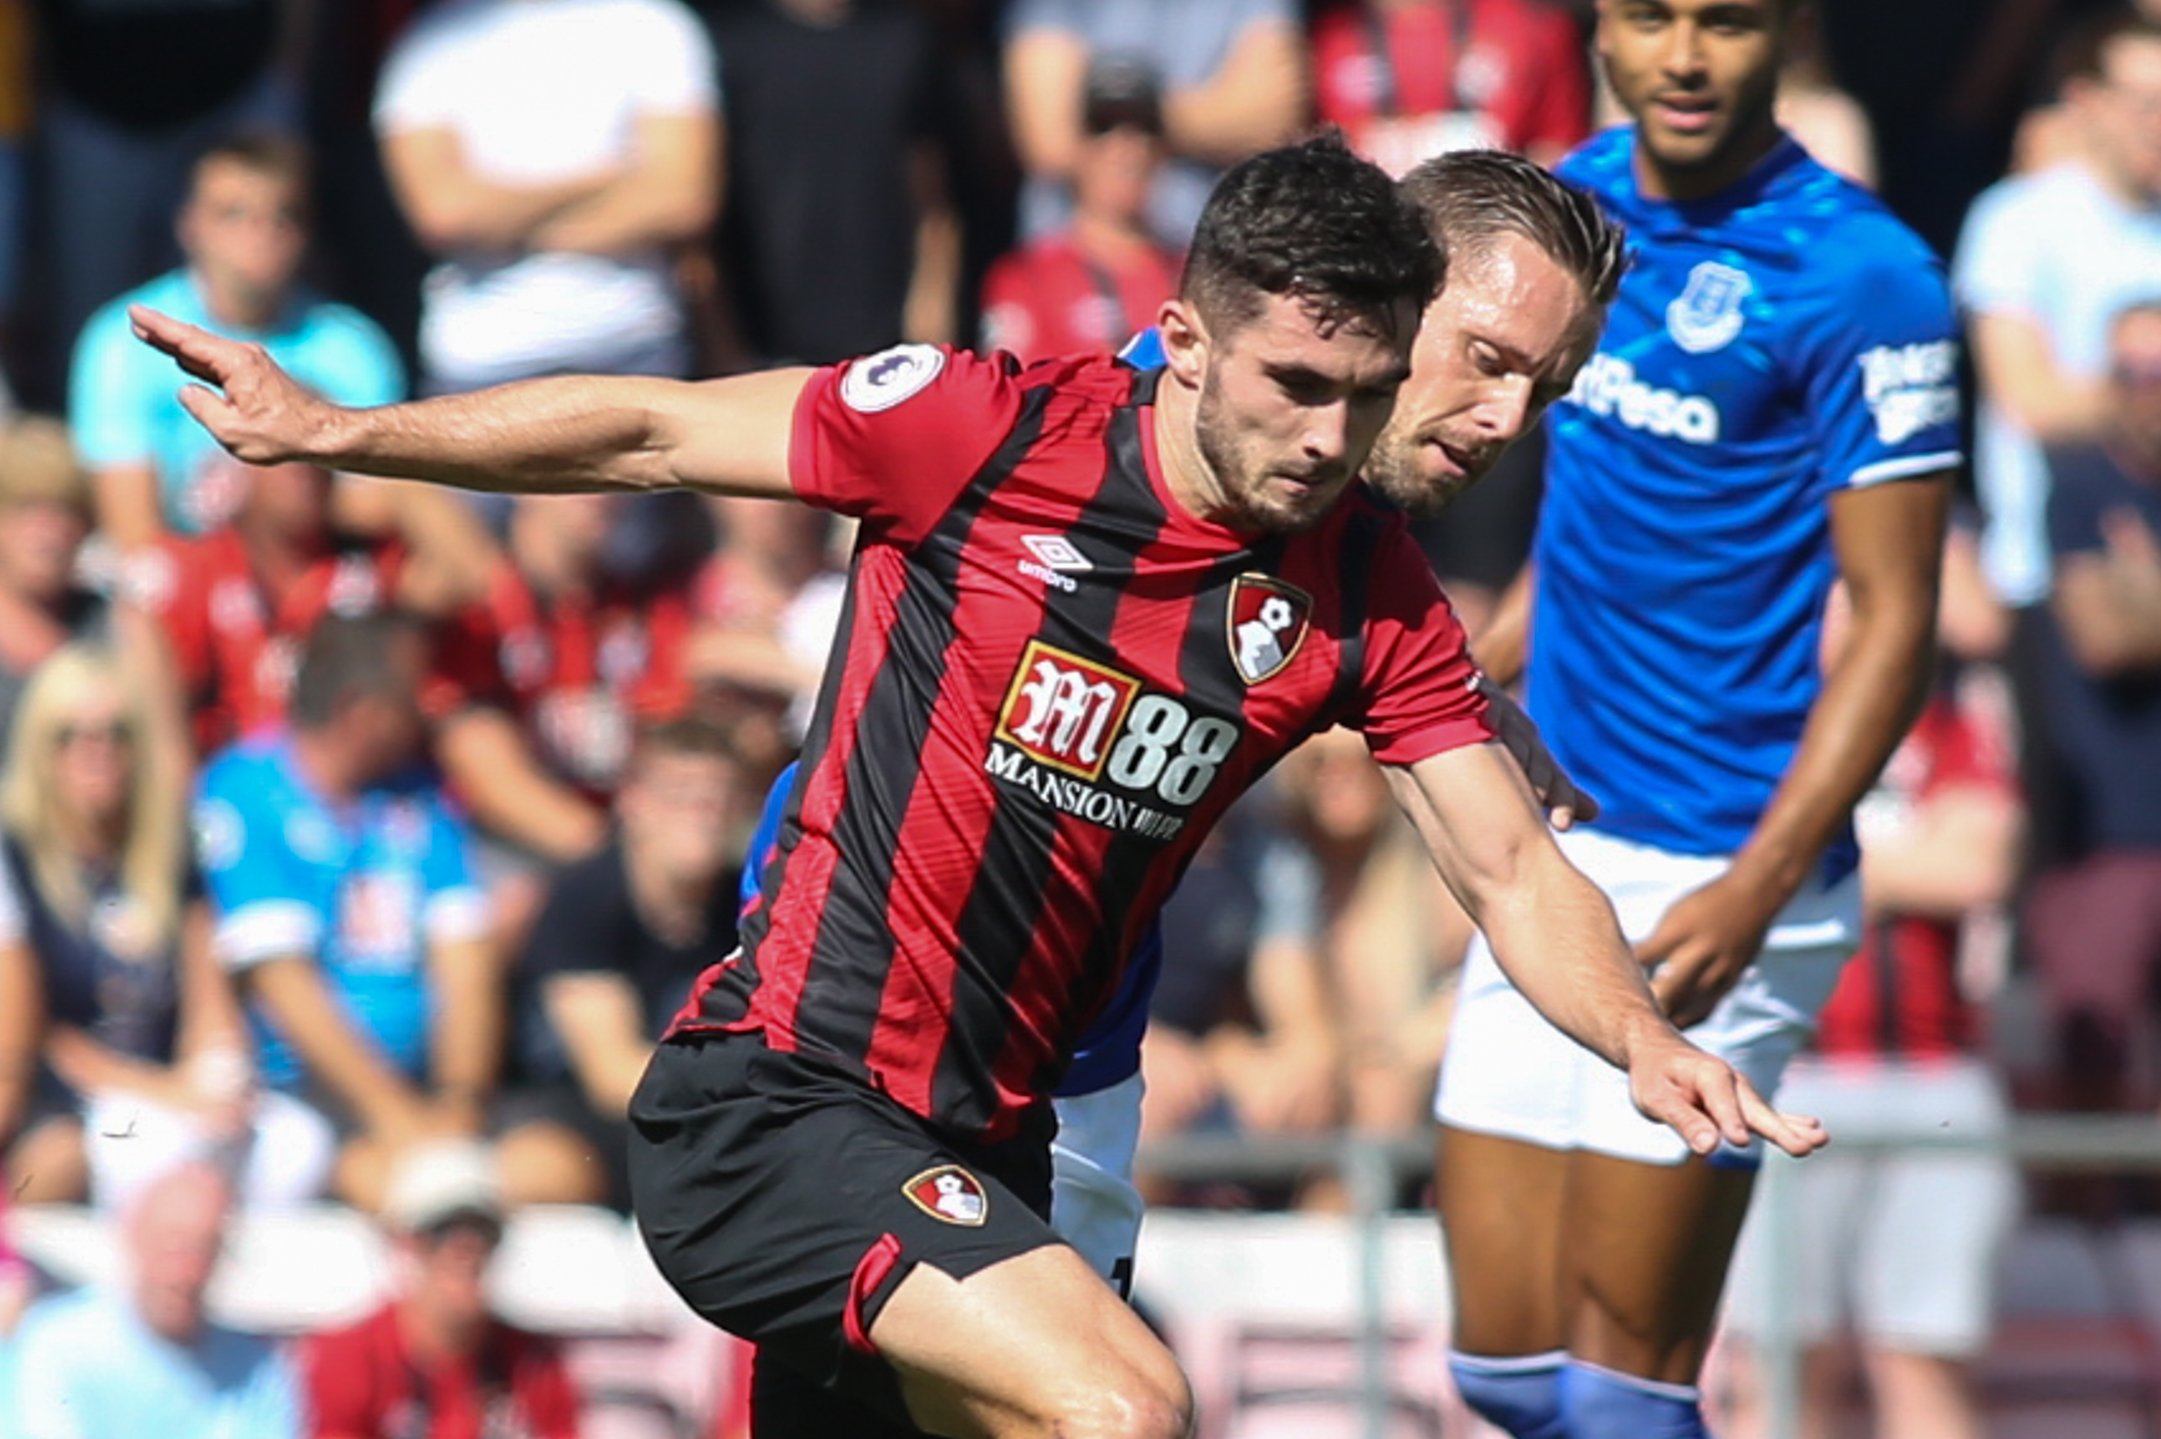 Lewis Cook can 'without a doubt' be in the mix for an England spot at Euro 2020, says Eddie Howe